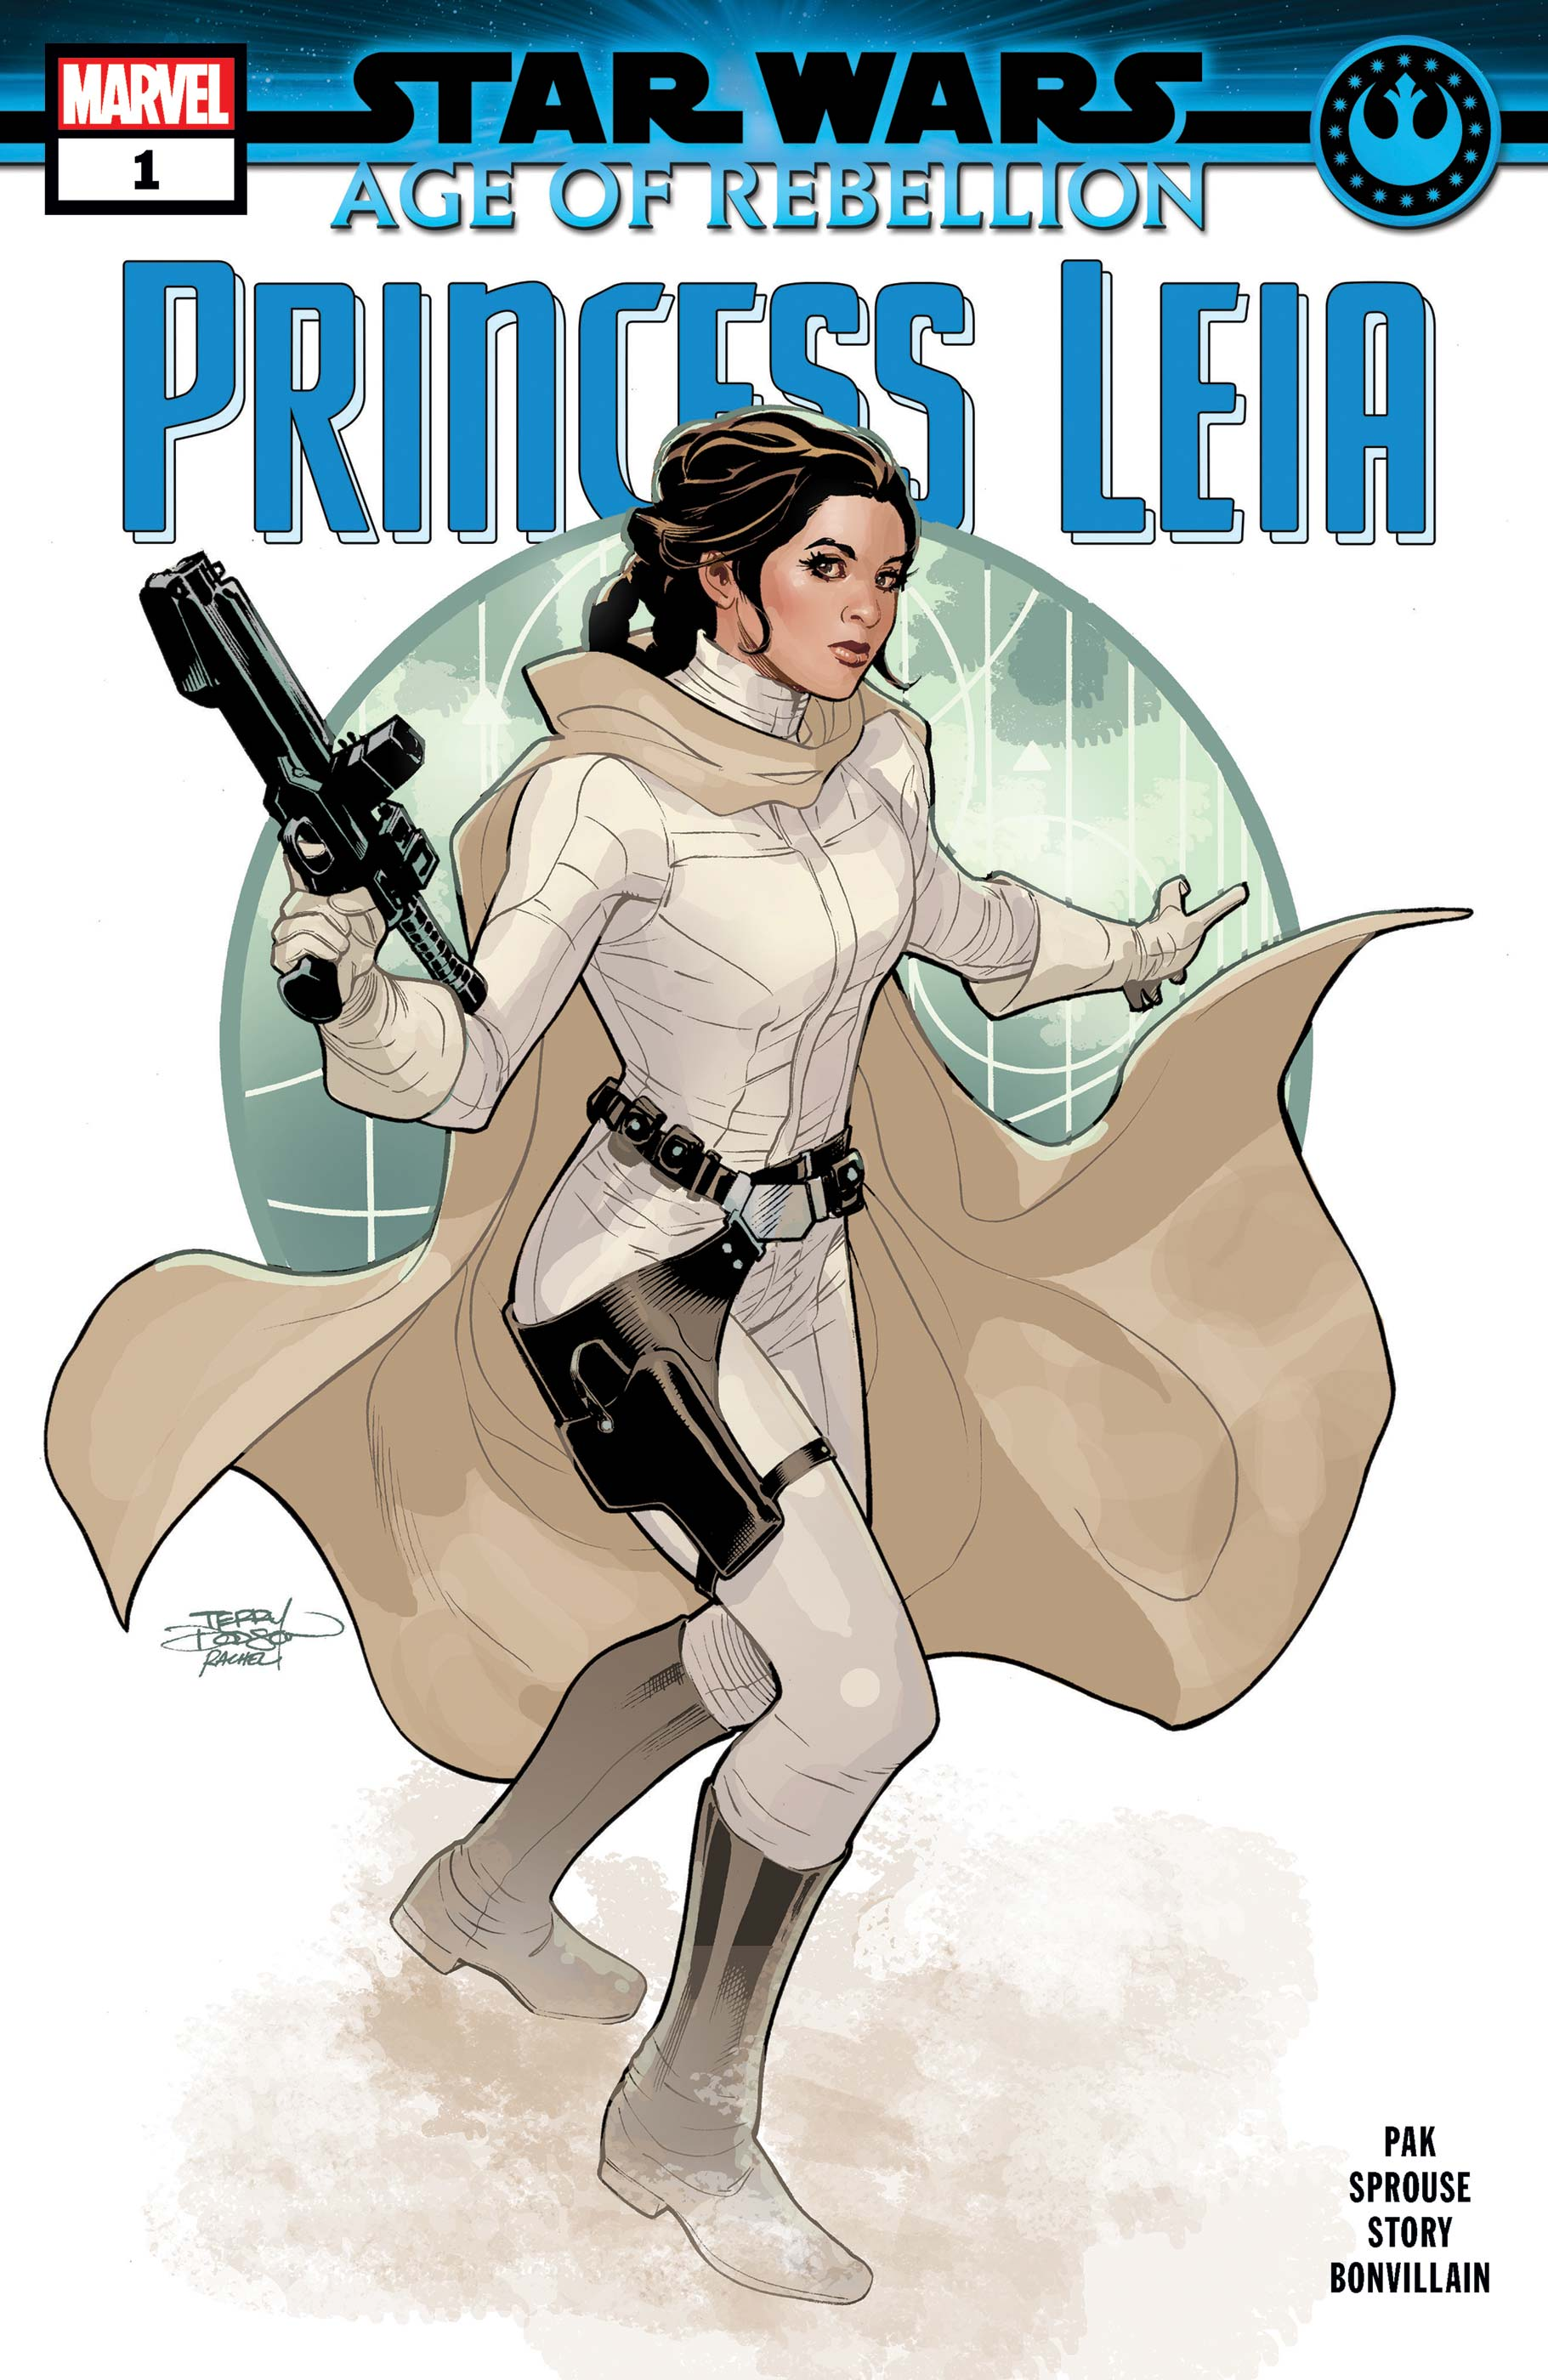 Marvel Comics Star Wars Age of Rebellion PRINCESS LEIA #1 first print movie Superhero